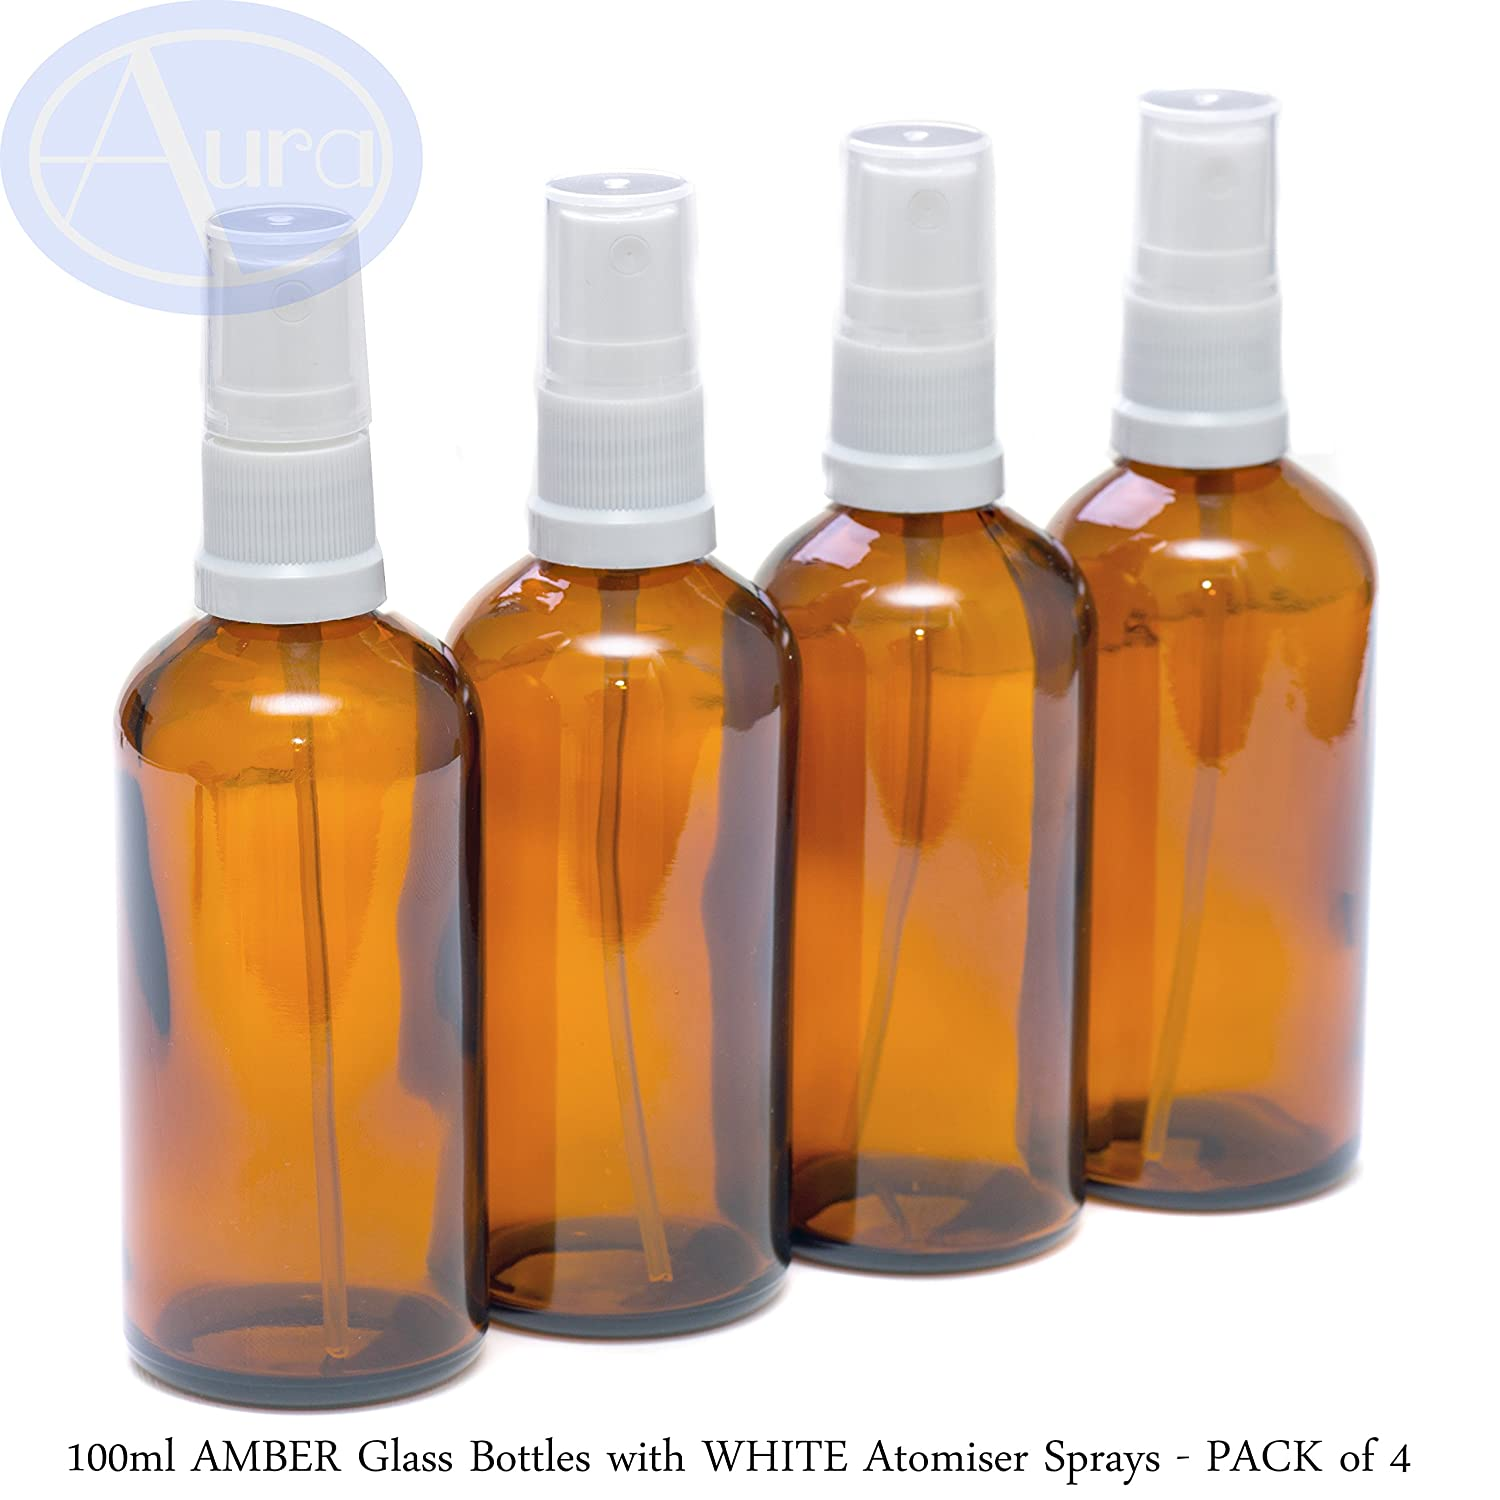 PACK of 4 - 100ml AMBER Glass Bottles with White ATOMISER Sprays. Essential Oil / Aromatherapy Use Aura Essential Oils Y100A4